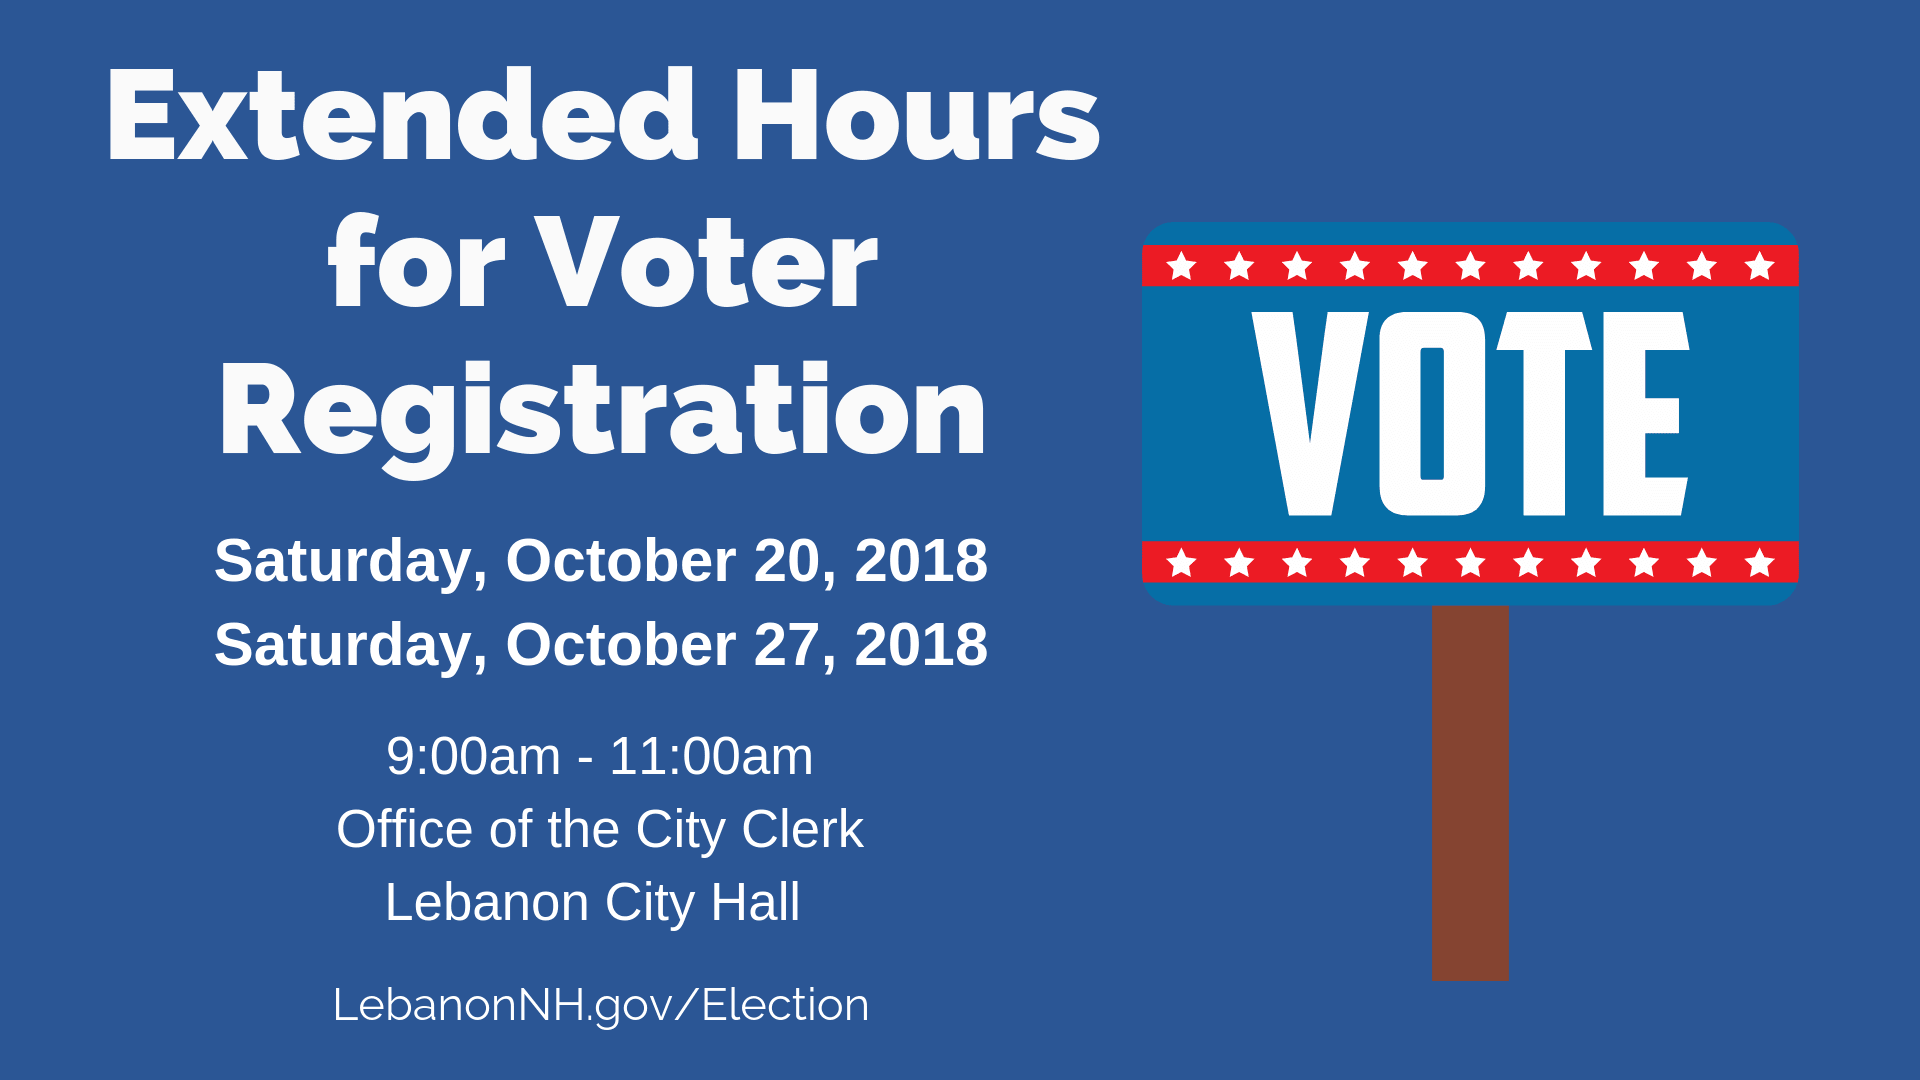 blue rectangle with vote sign and information about extended hours for voter registration